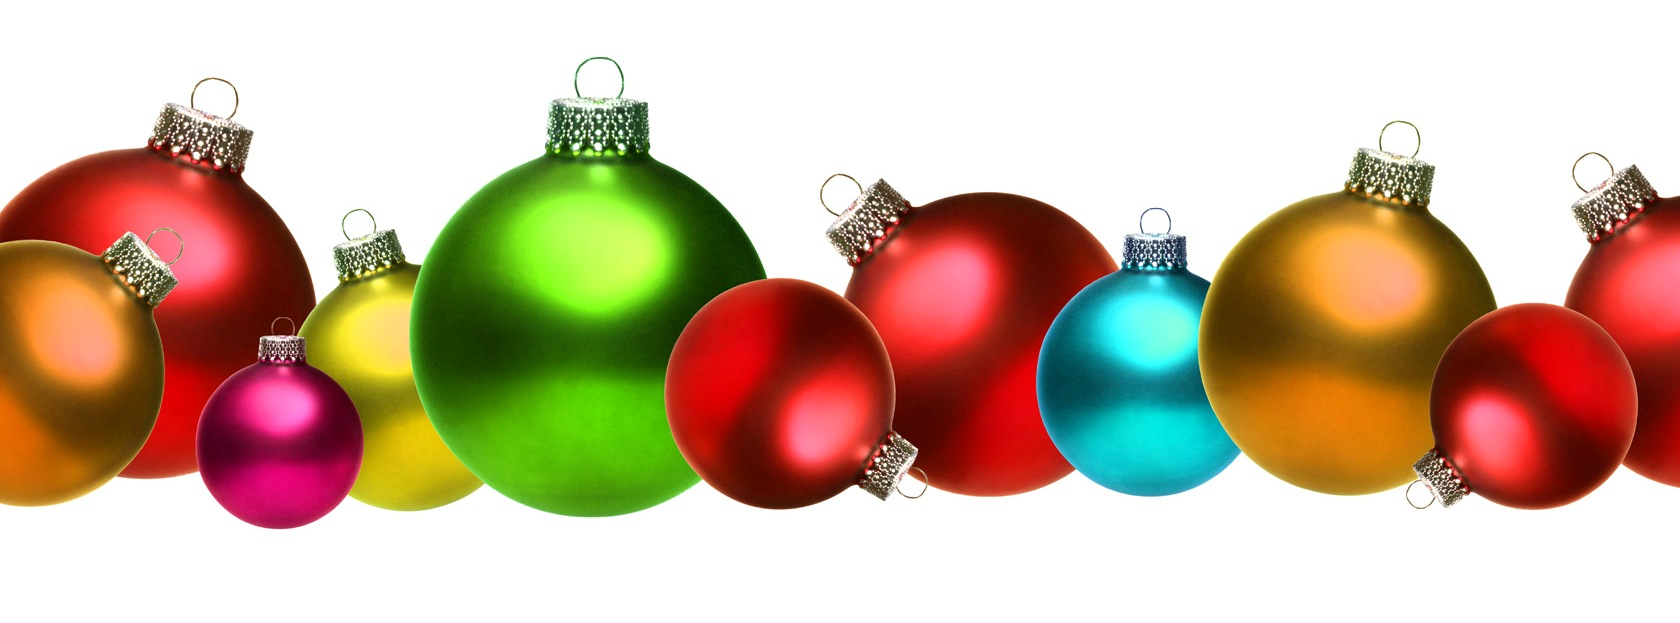 christmas decorations free - Free Christmas Decorations